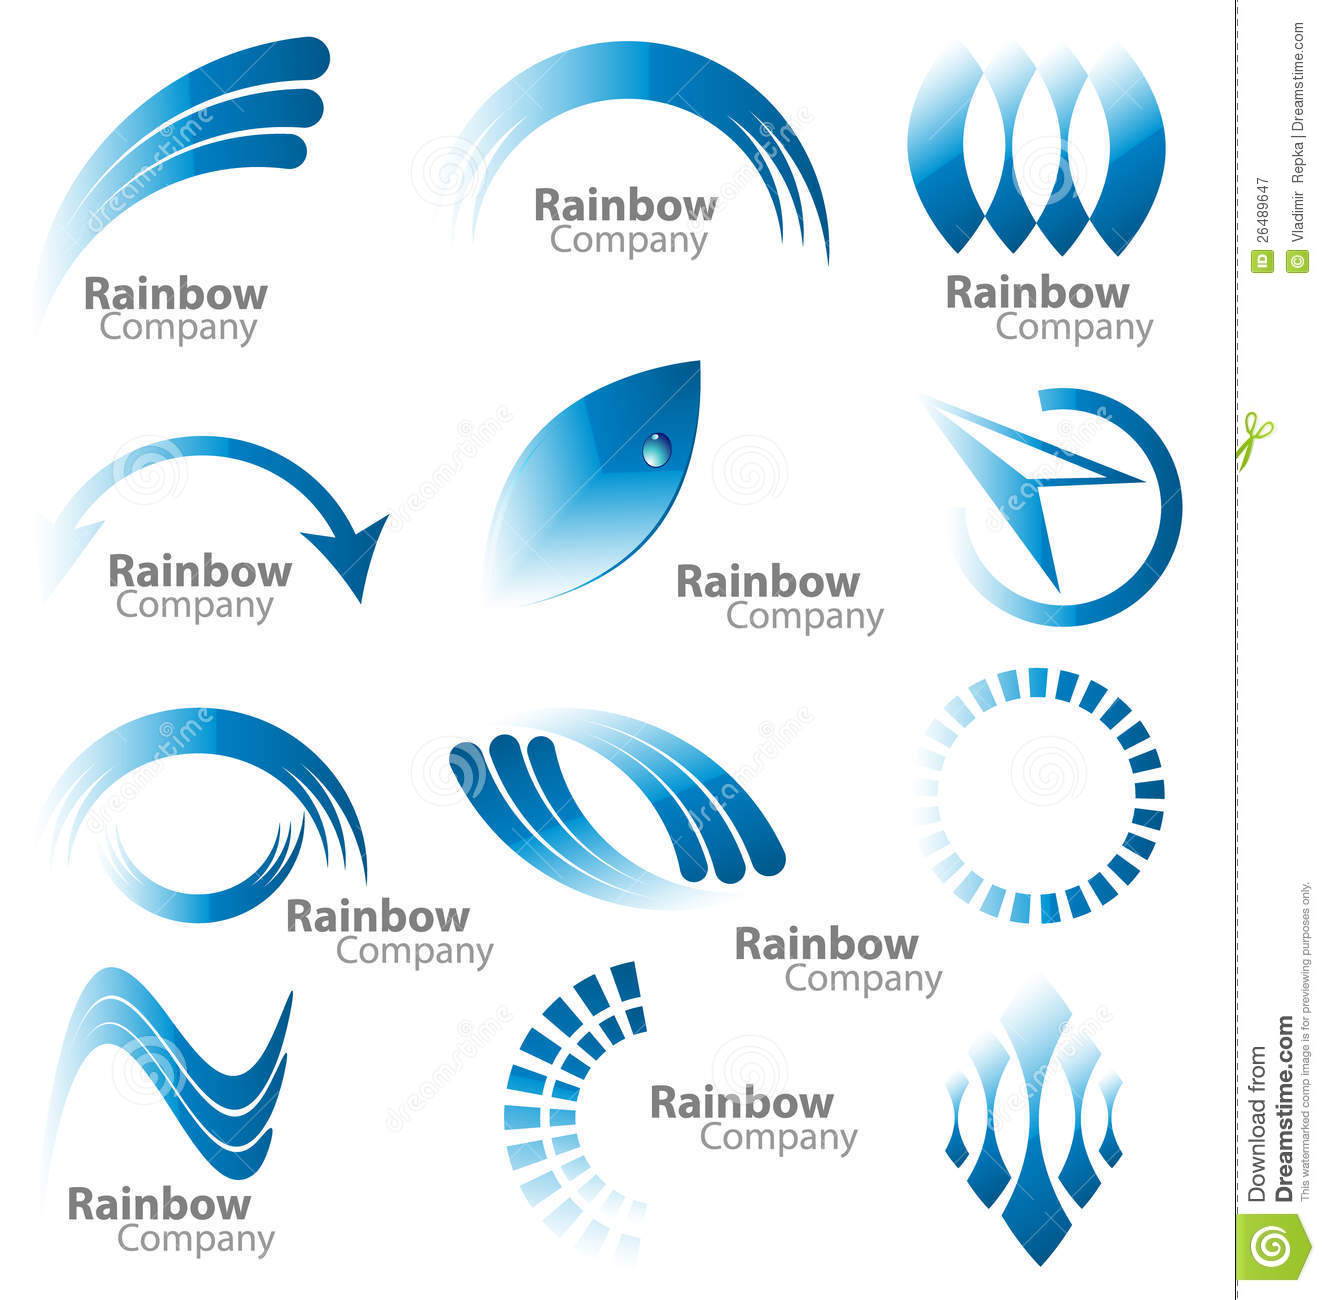 Creative design of a multiple logos in the blue rainbow color palette.